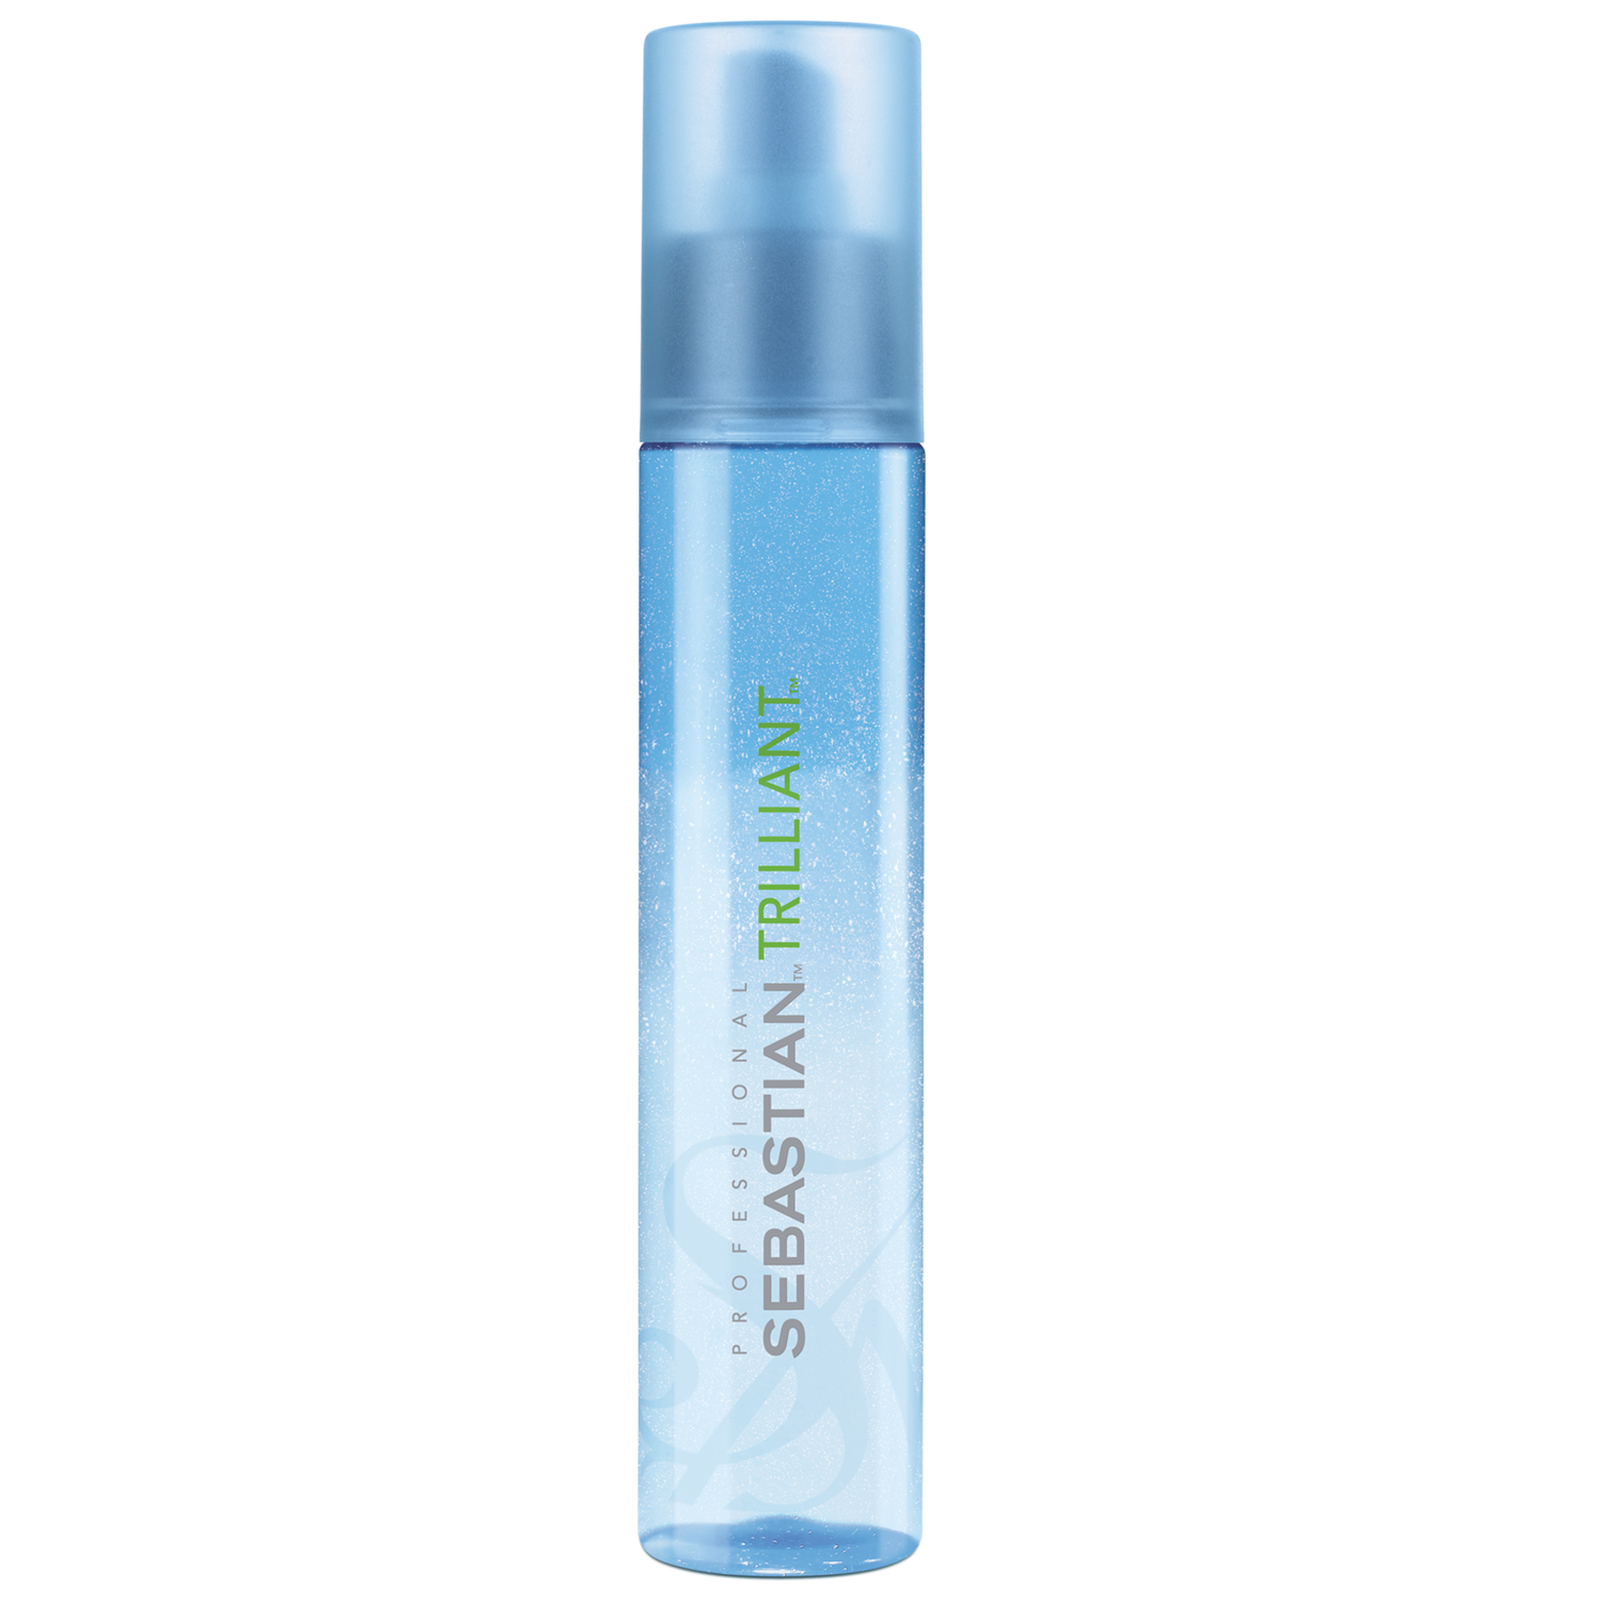 SEBASTIAN PROFESSIONAL Styling Trilliant Thermal Protection And Shimmer-Complex 150ml